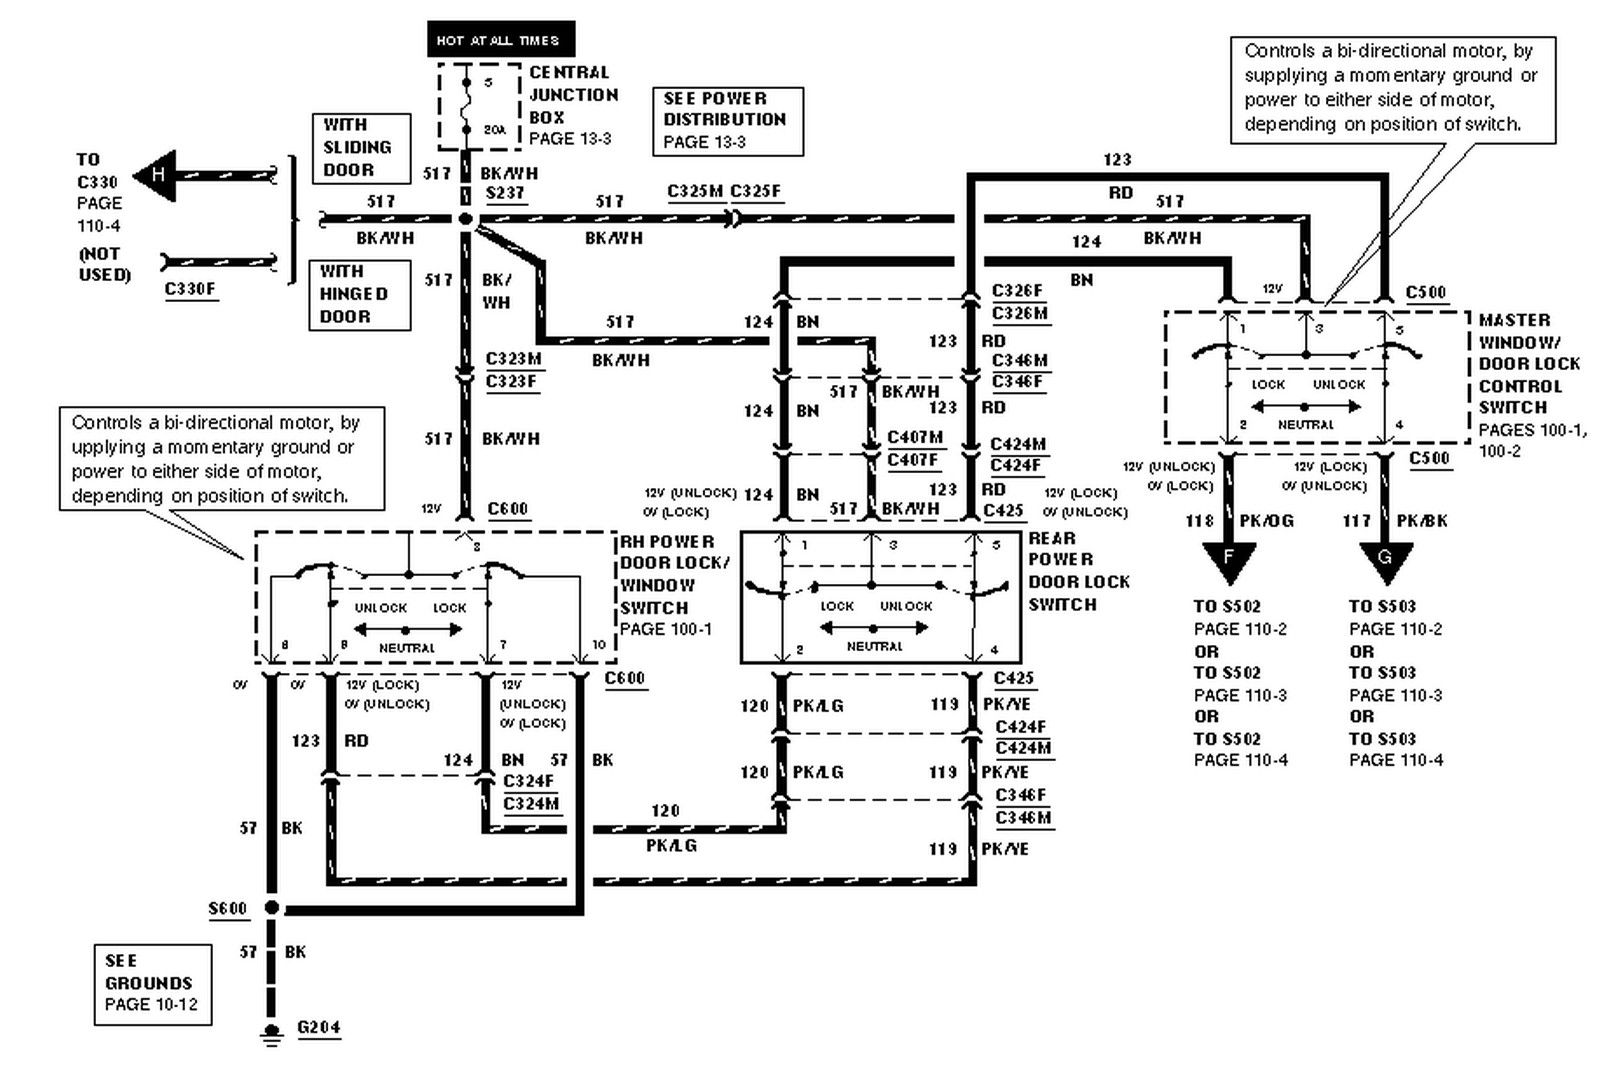 80 2010_11_05_235941_99_e_350_power_door_lock_wiring_diagram_e574233ae37af9677ff5fddb790386a28f9dd7ad 2011 f 150 wiring parts diagrams wiring diagram simonand 2012 f150 door wiring harness at bayanpartner.co